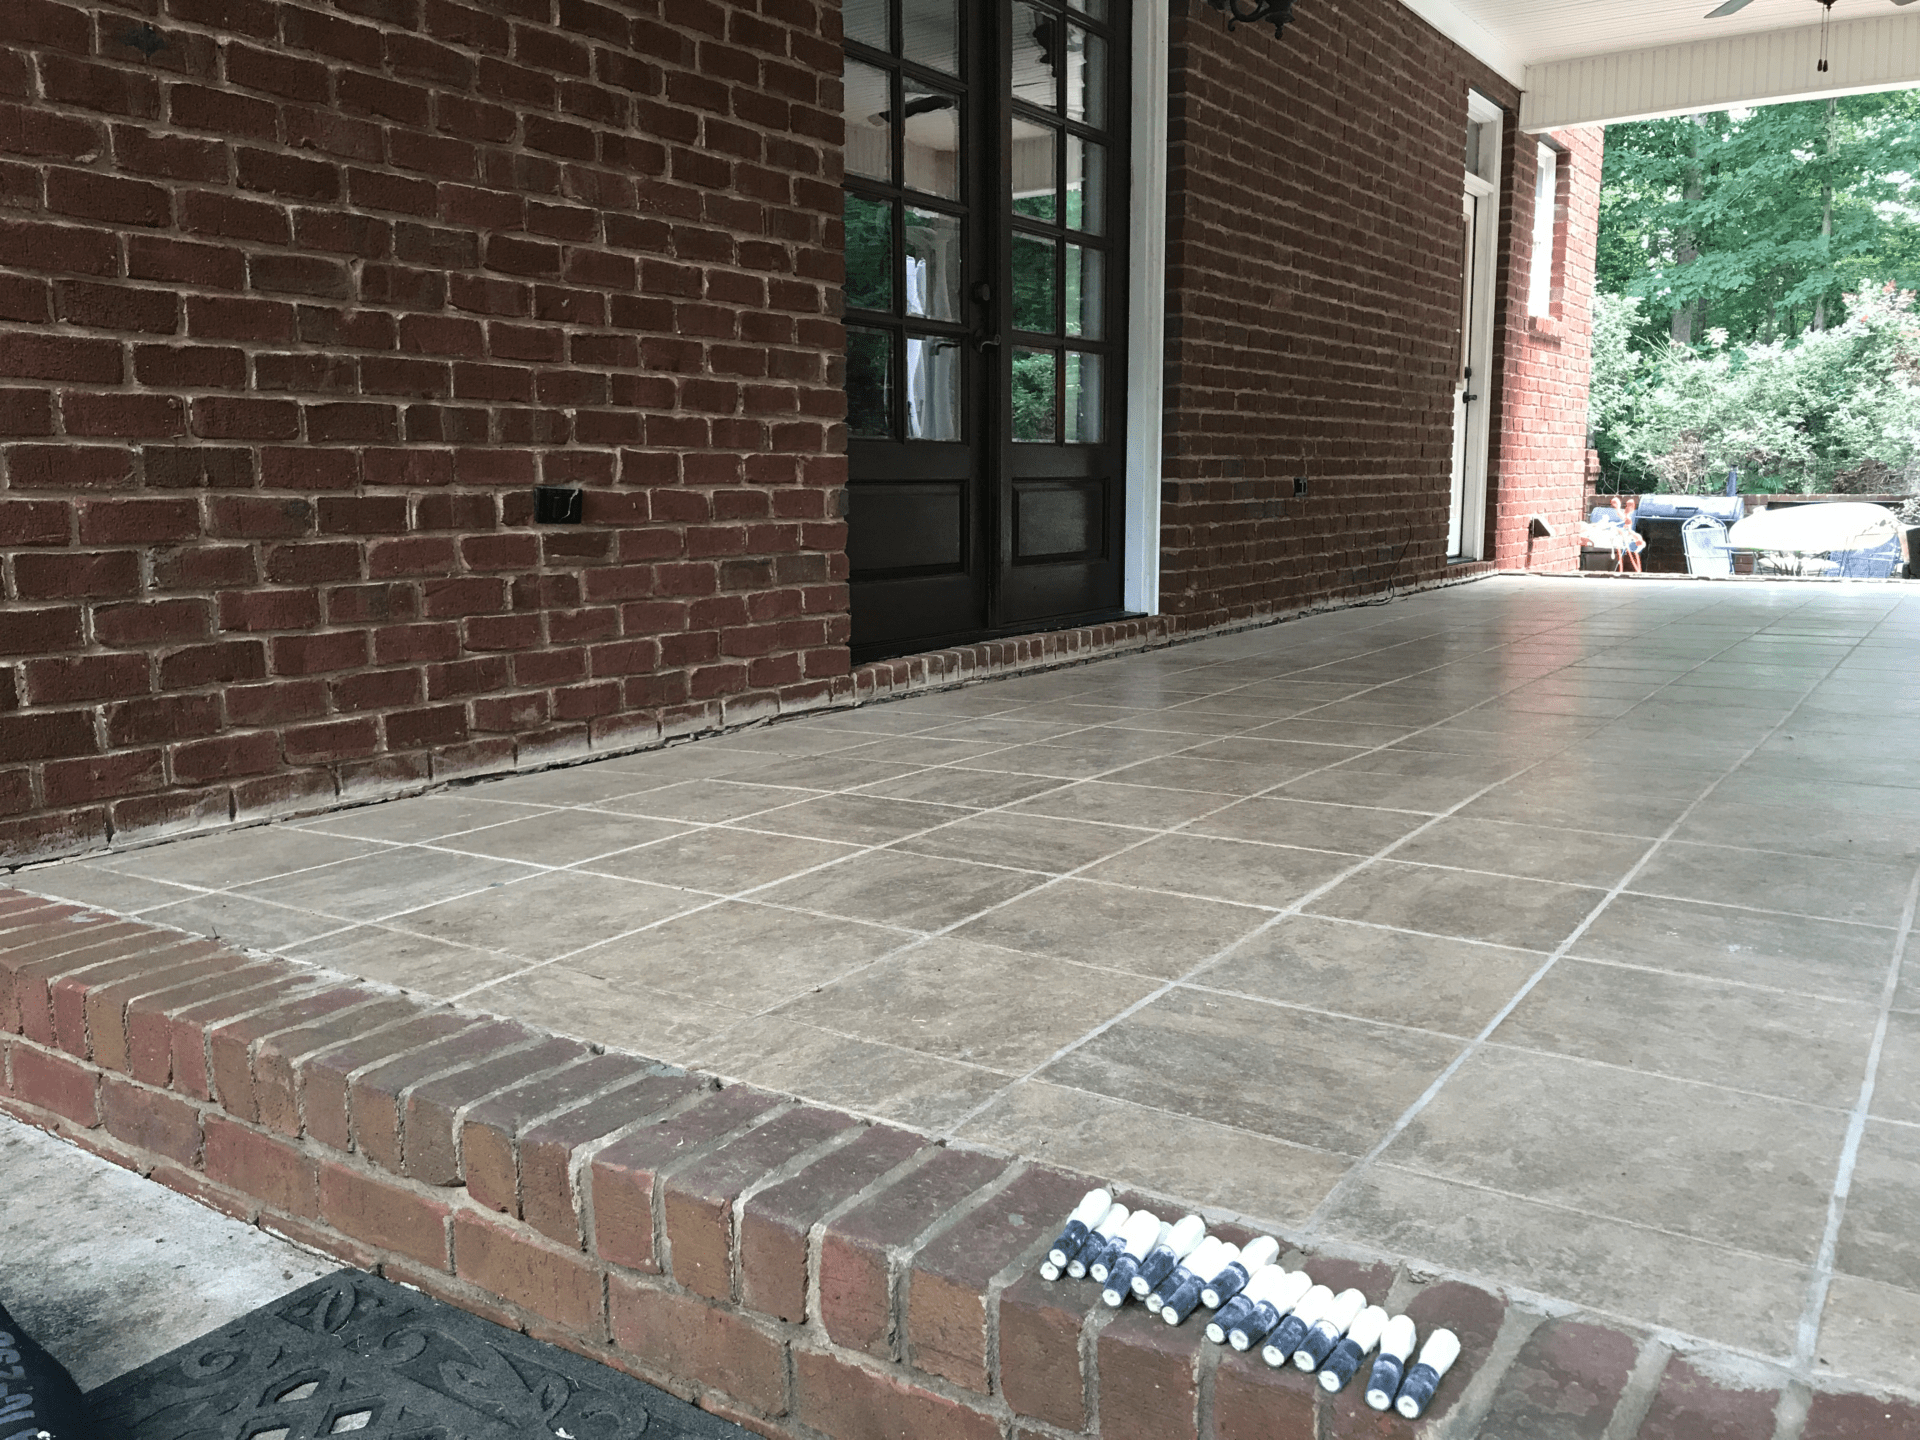 Sinking concrete patio with tile and brick before